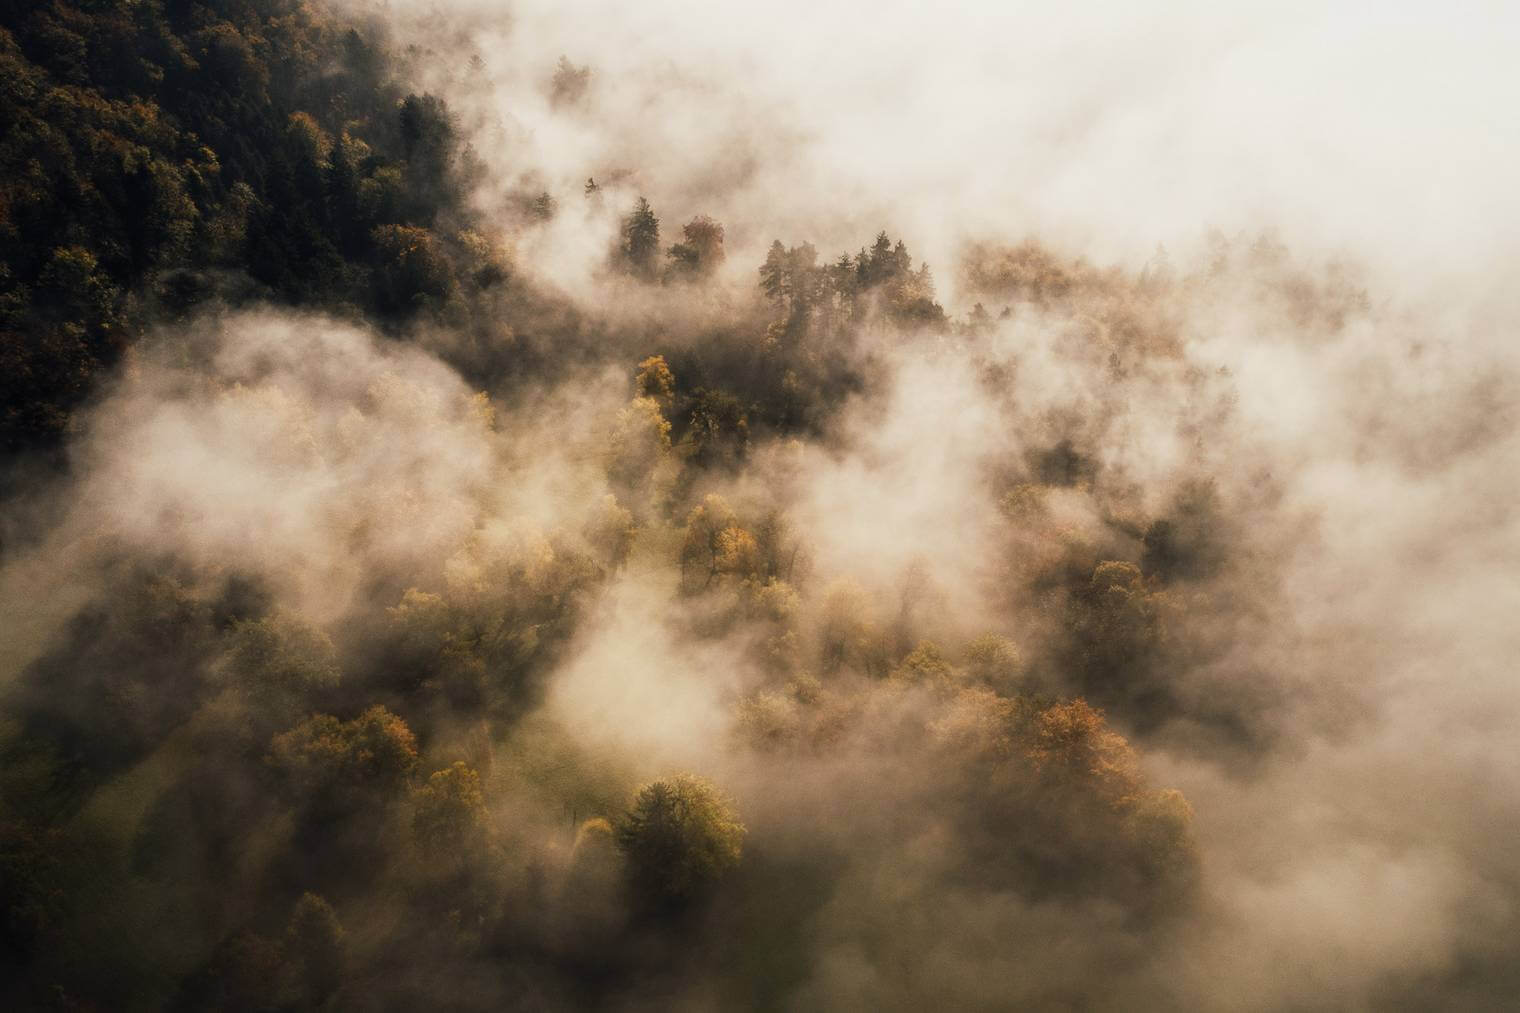 Forest in Morning Fog from Aerial Perspective